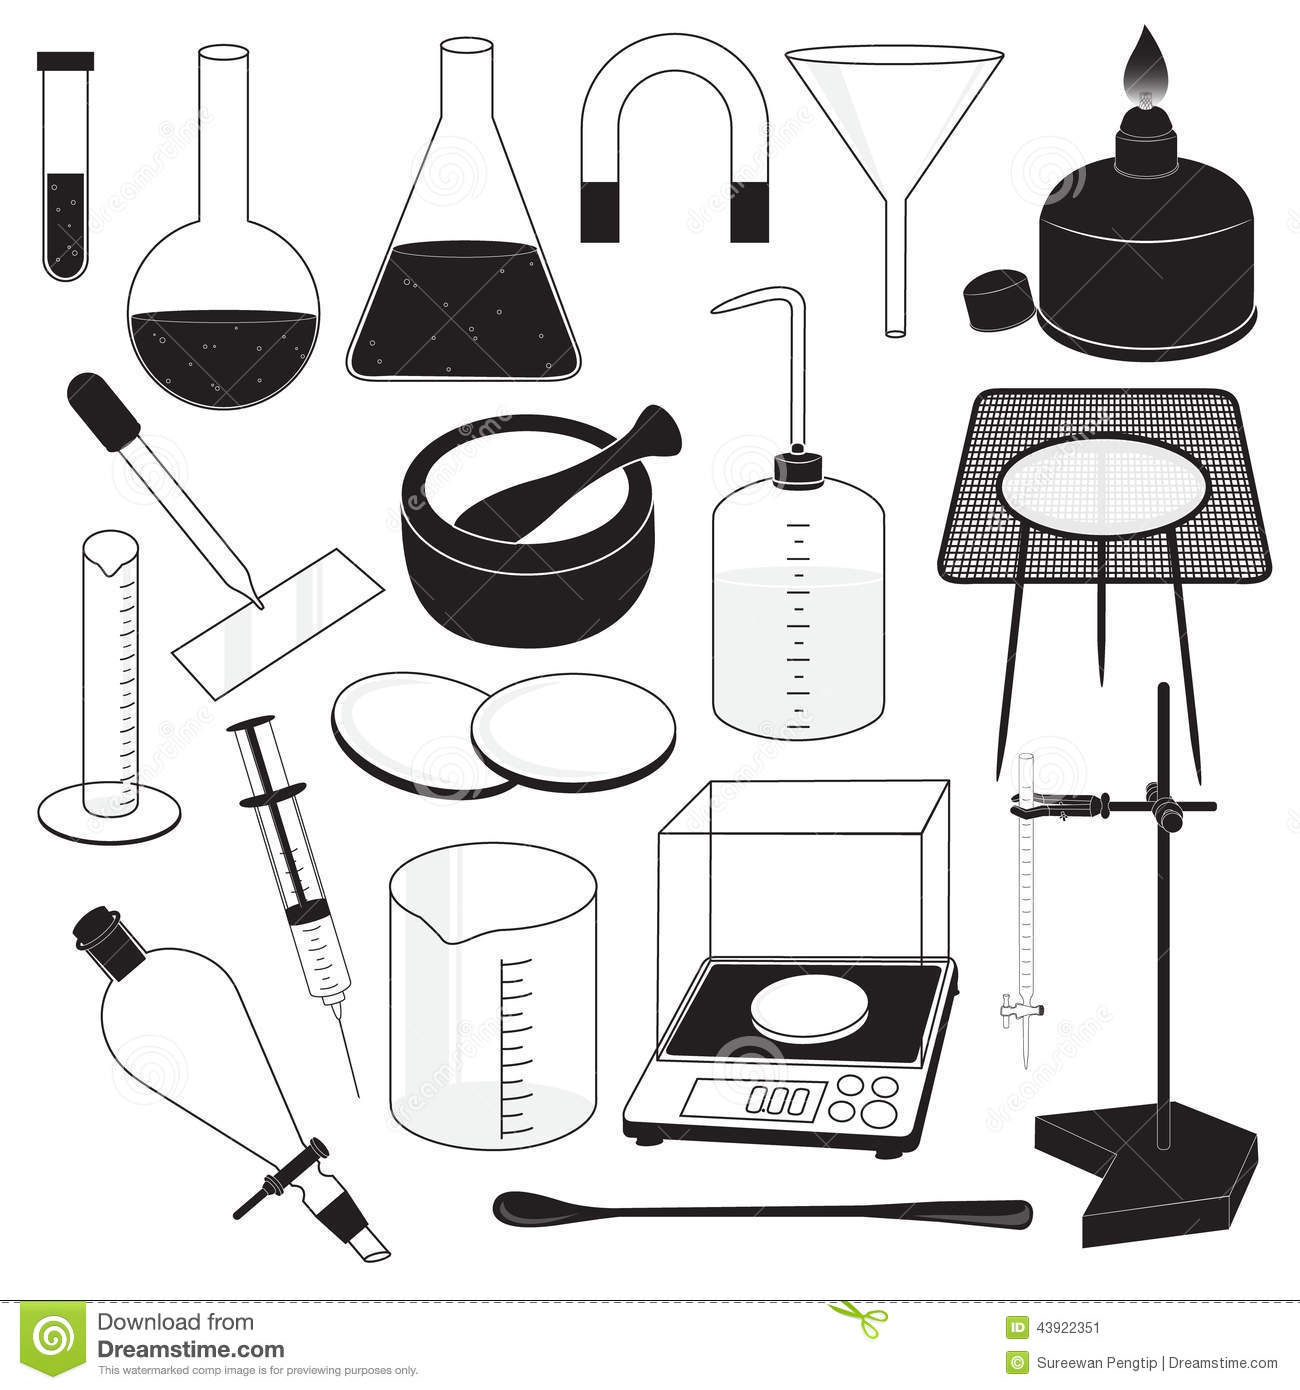 Laboratory apparatus clipart black and white 6 » Clipart Station.